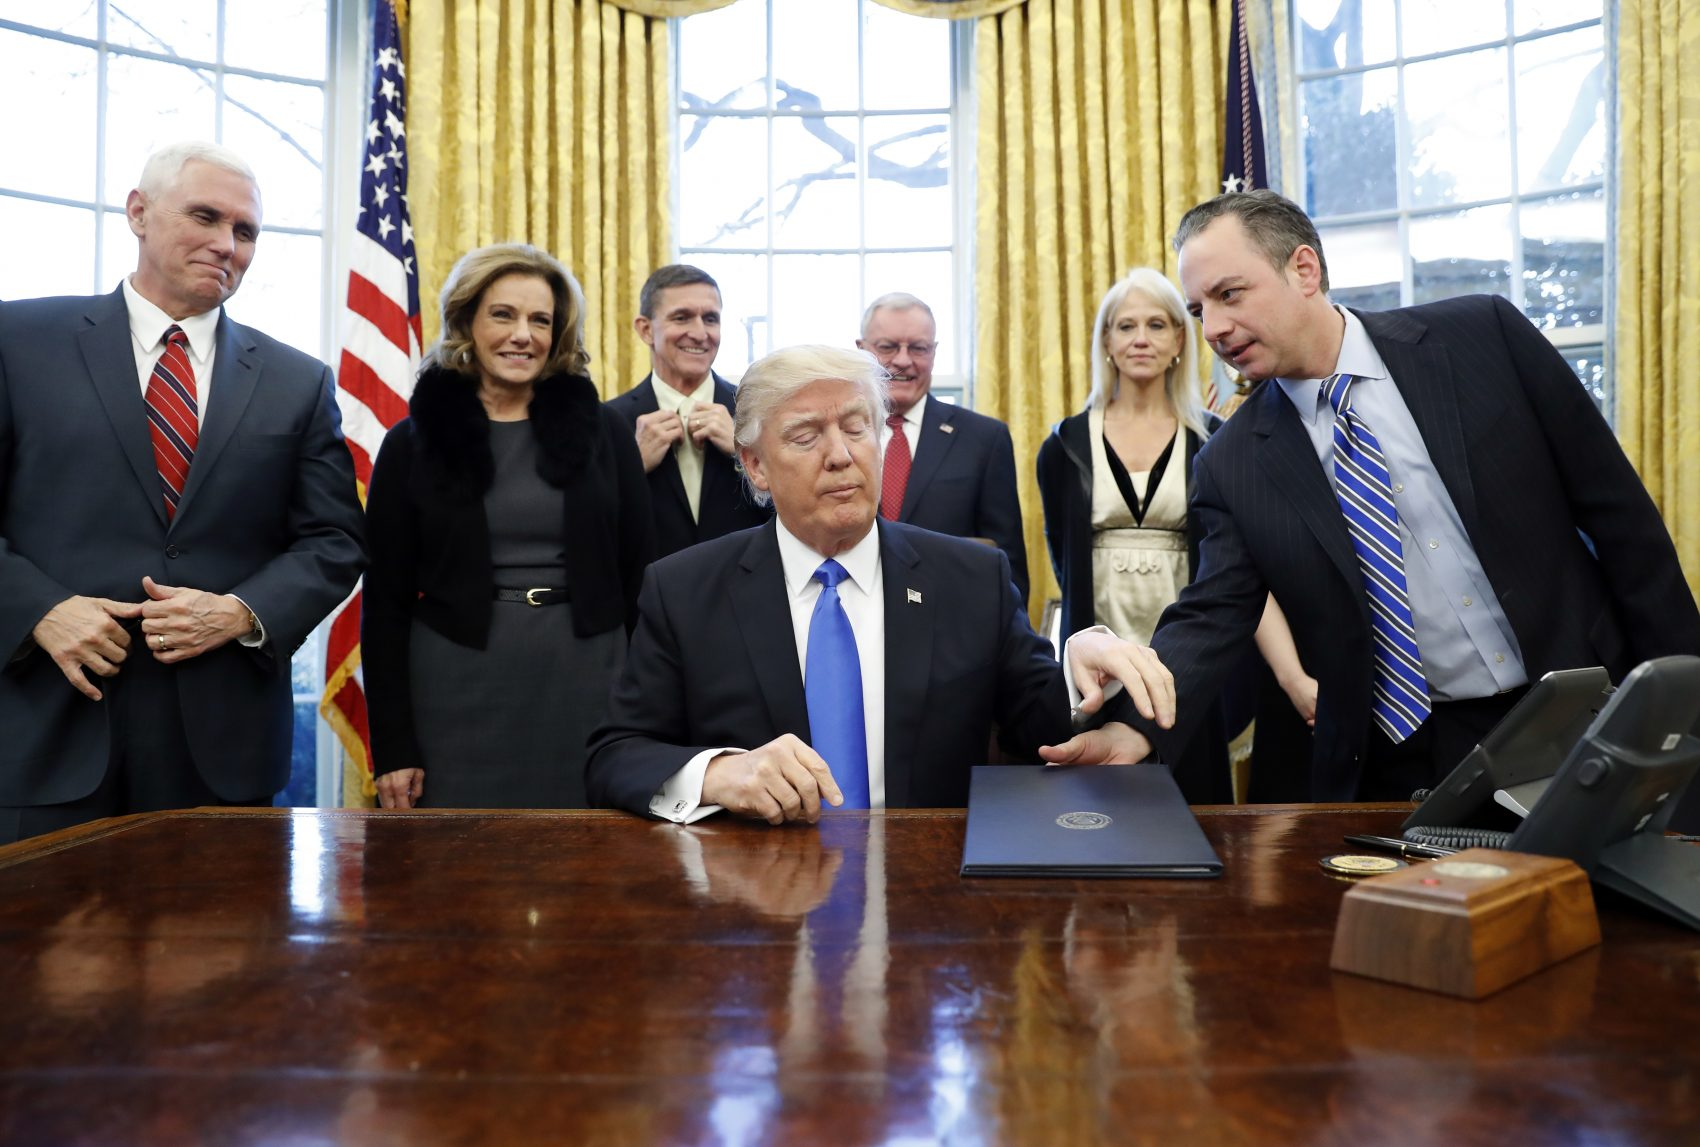 President Donald Trump is handed an Executive Order to sign by White House Chief of Staff Reince Priebus with Vice President Mike Pence and others in the Oval Office Saturday. (Alex Brandon/AP)